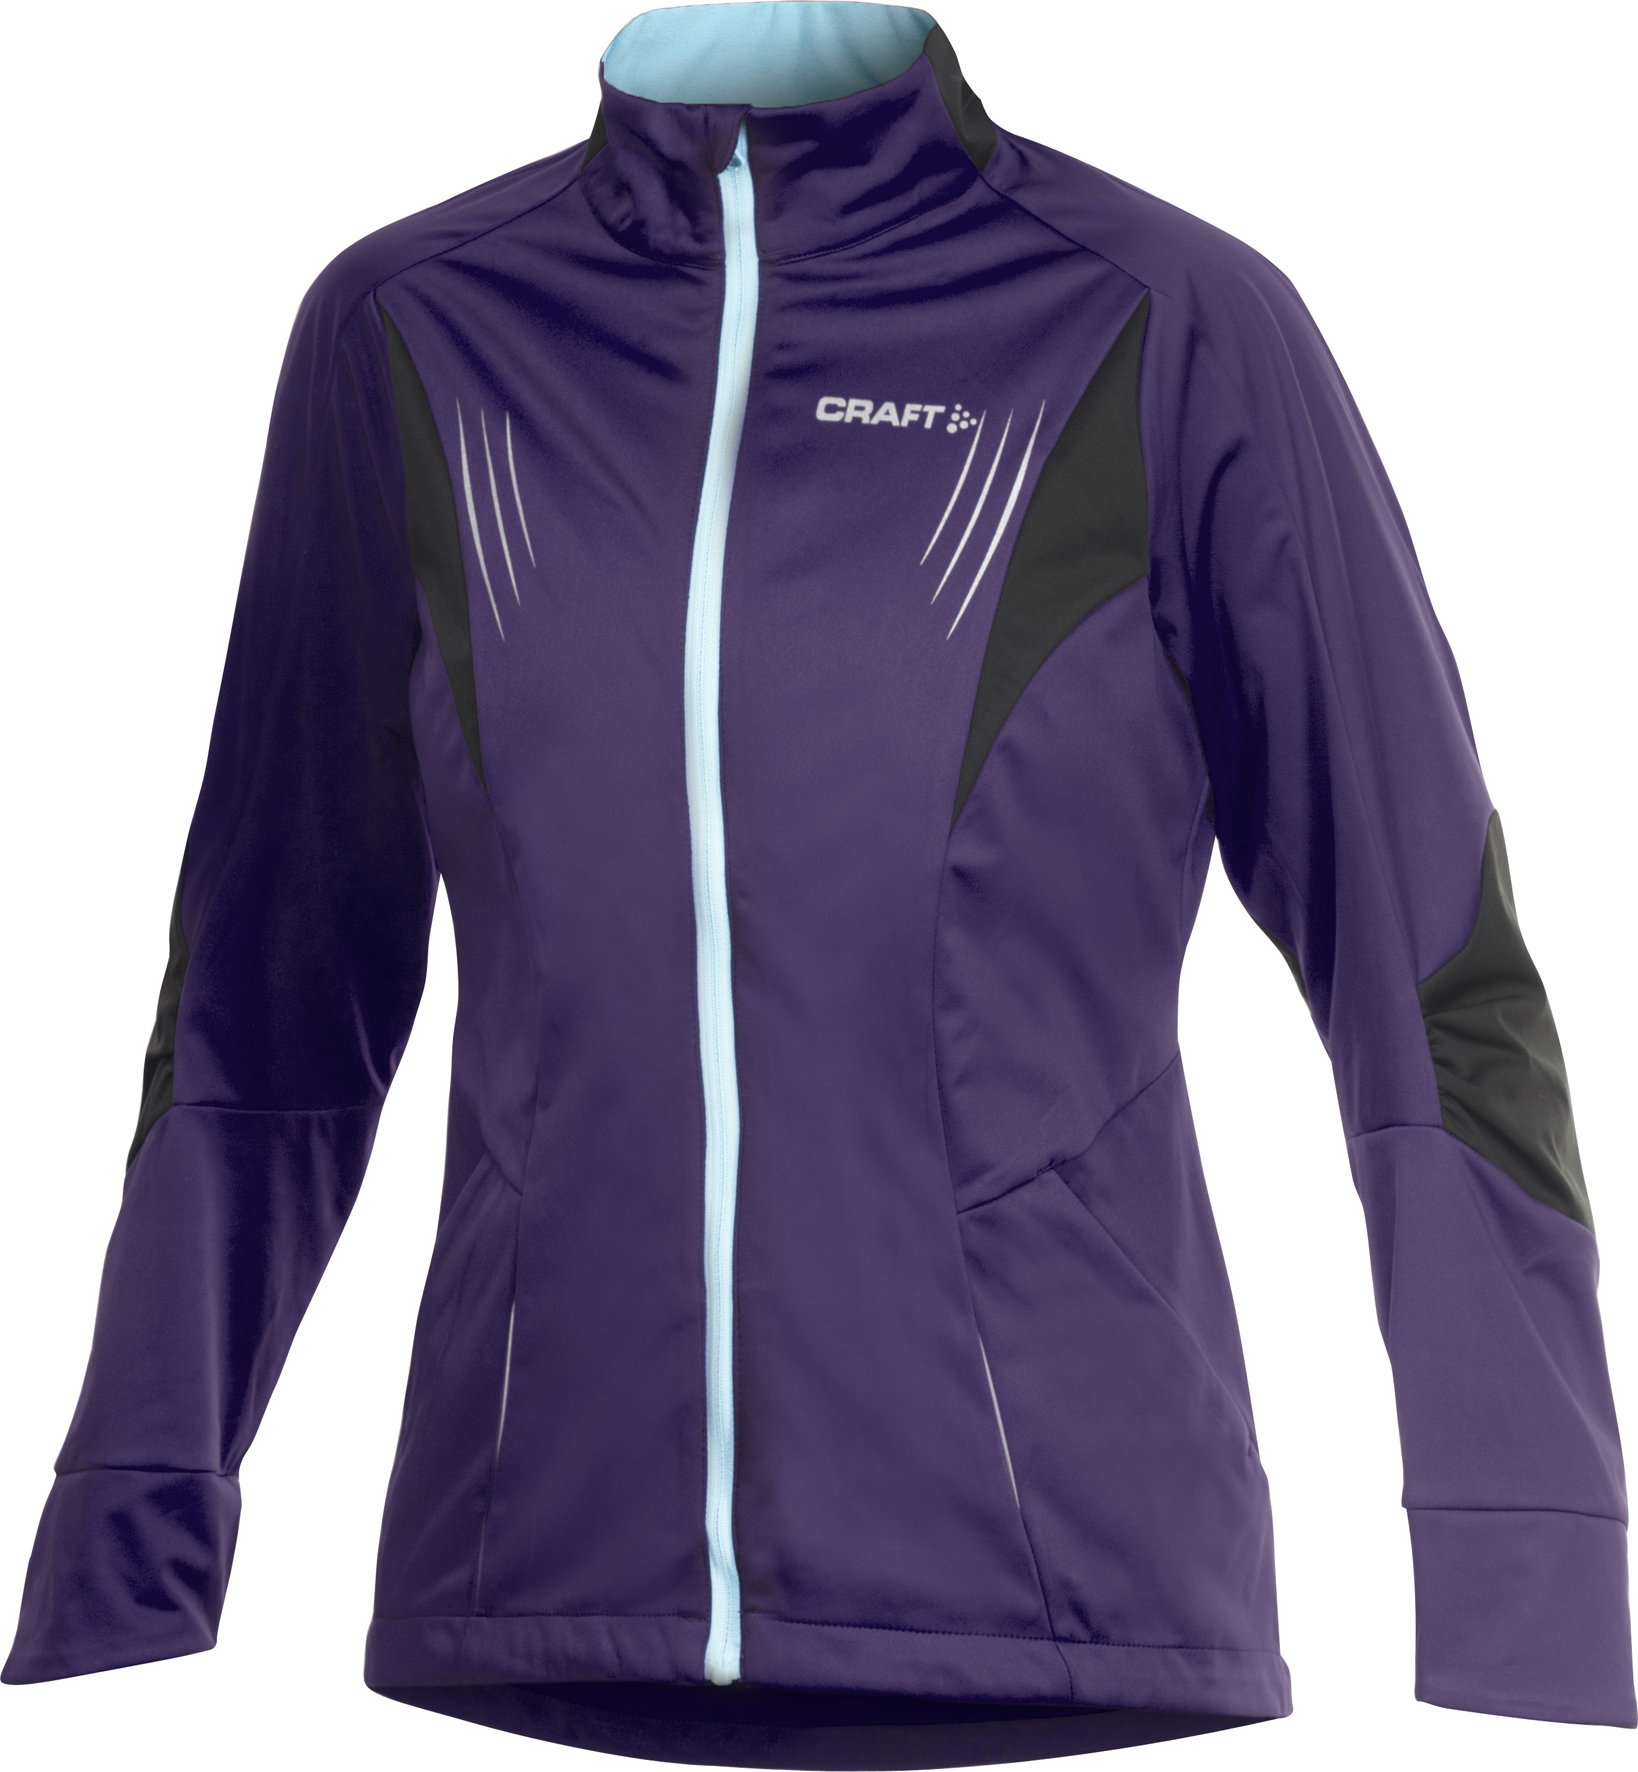 Куртка Craft XC High Performance Jacket женская